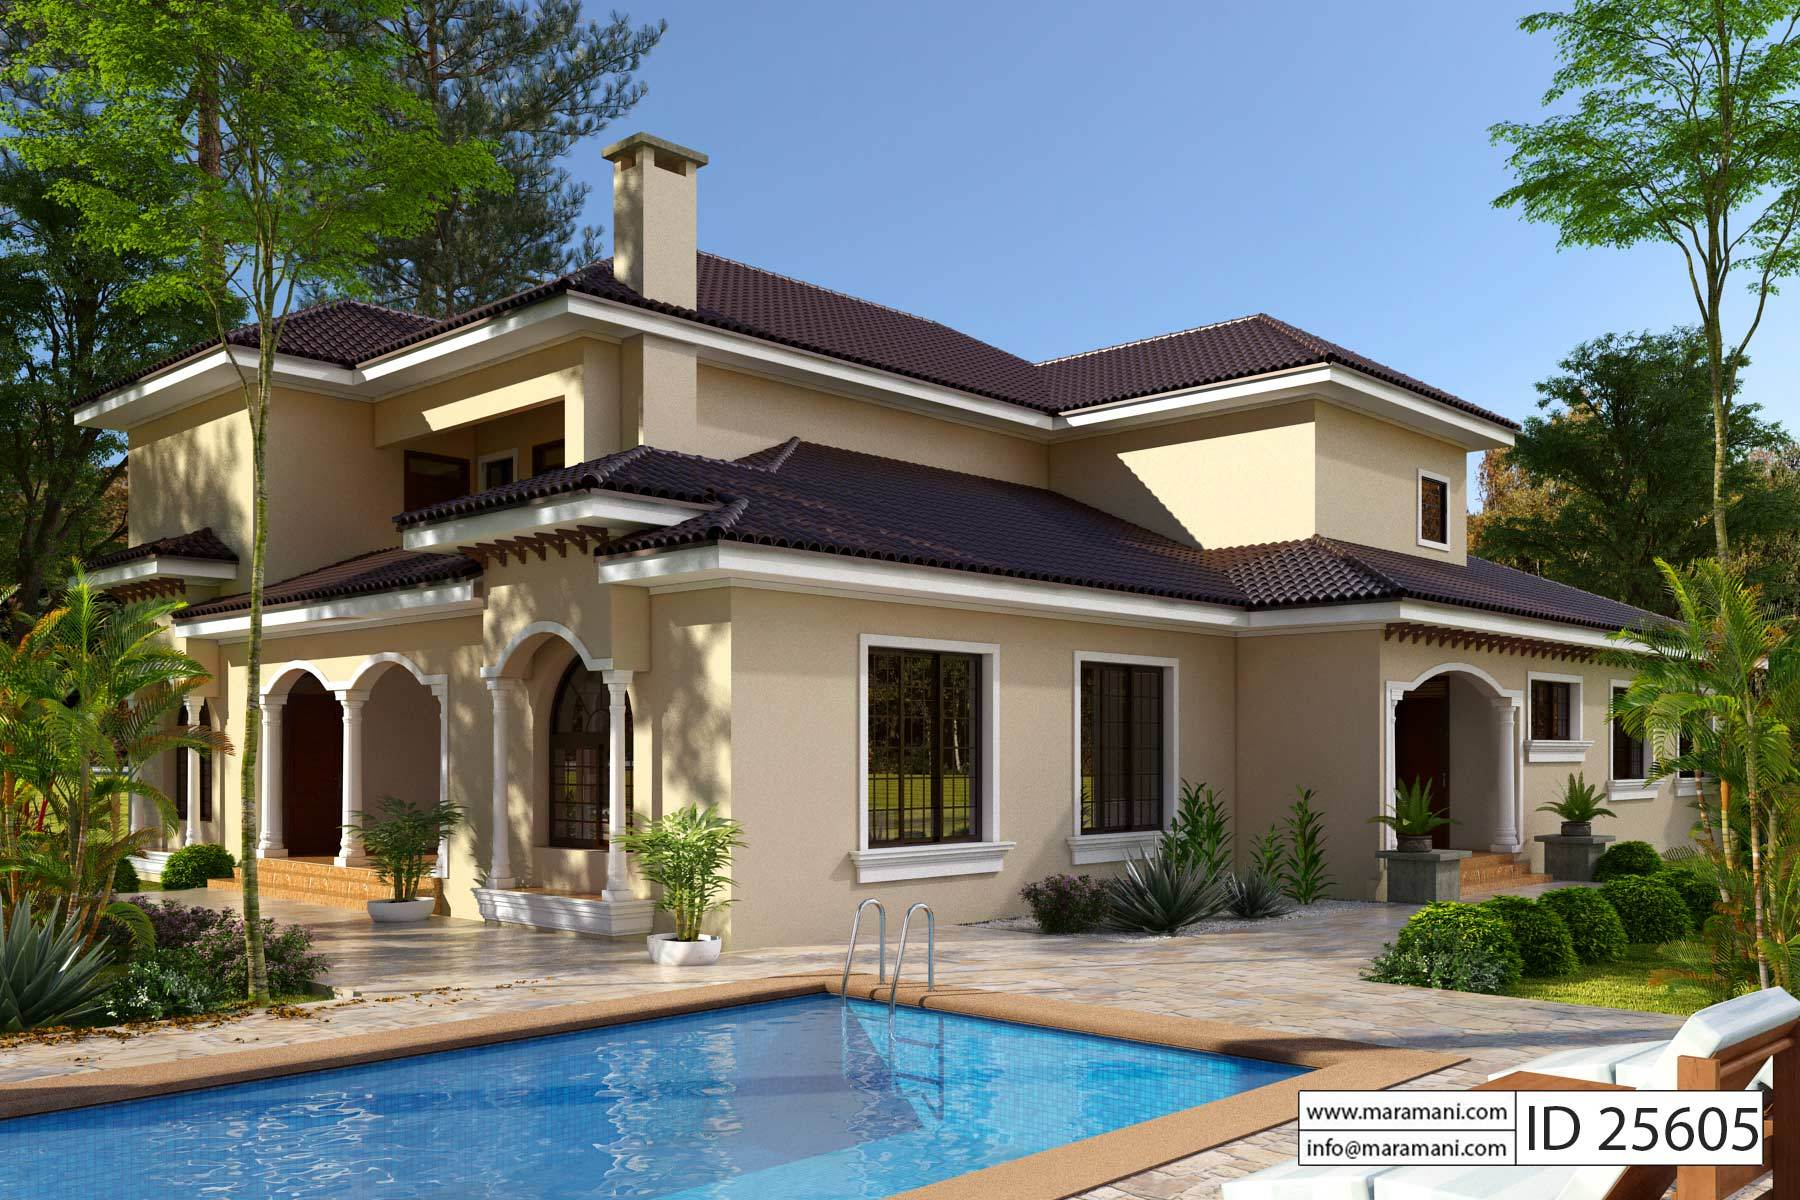 Open floor house plans id 25604 house designs by maramani for Idaho house plans